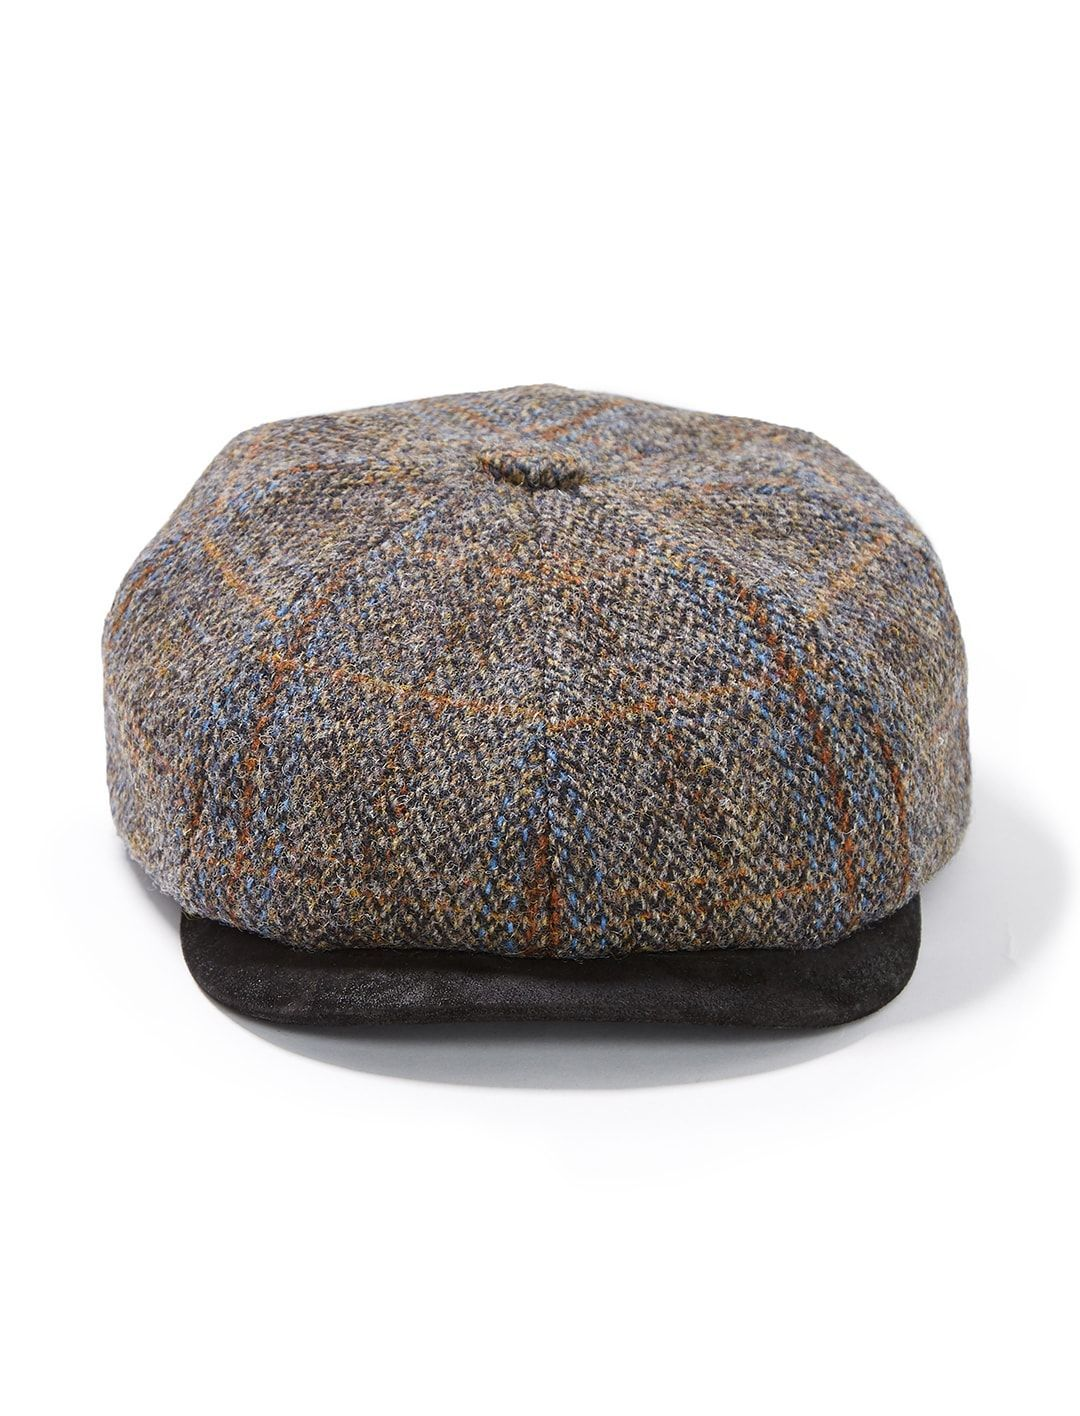 582123a467922 Stetson Men s HARRIS TWEED PLAID STW280GR. Details